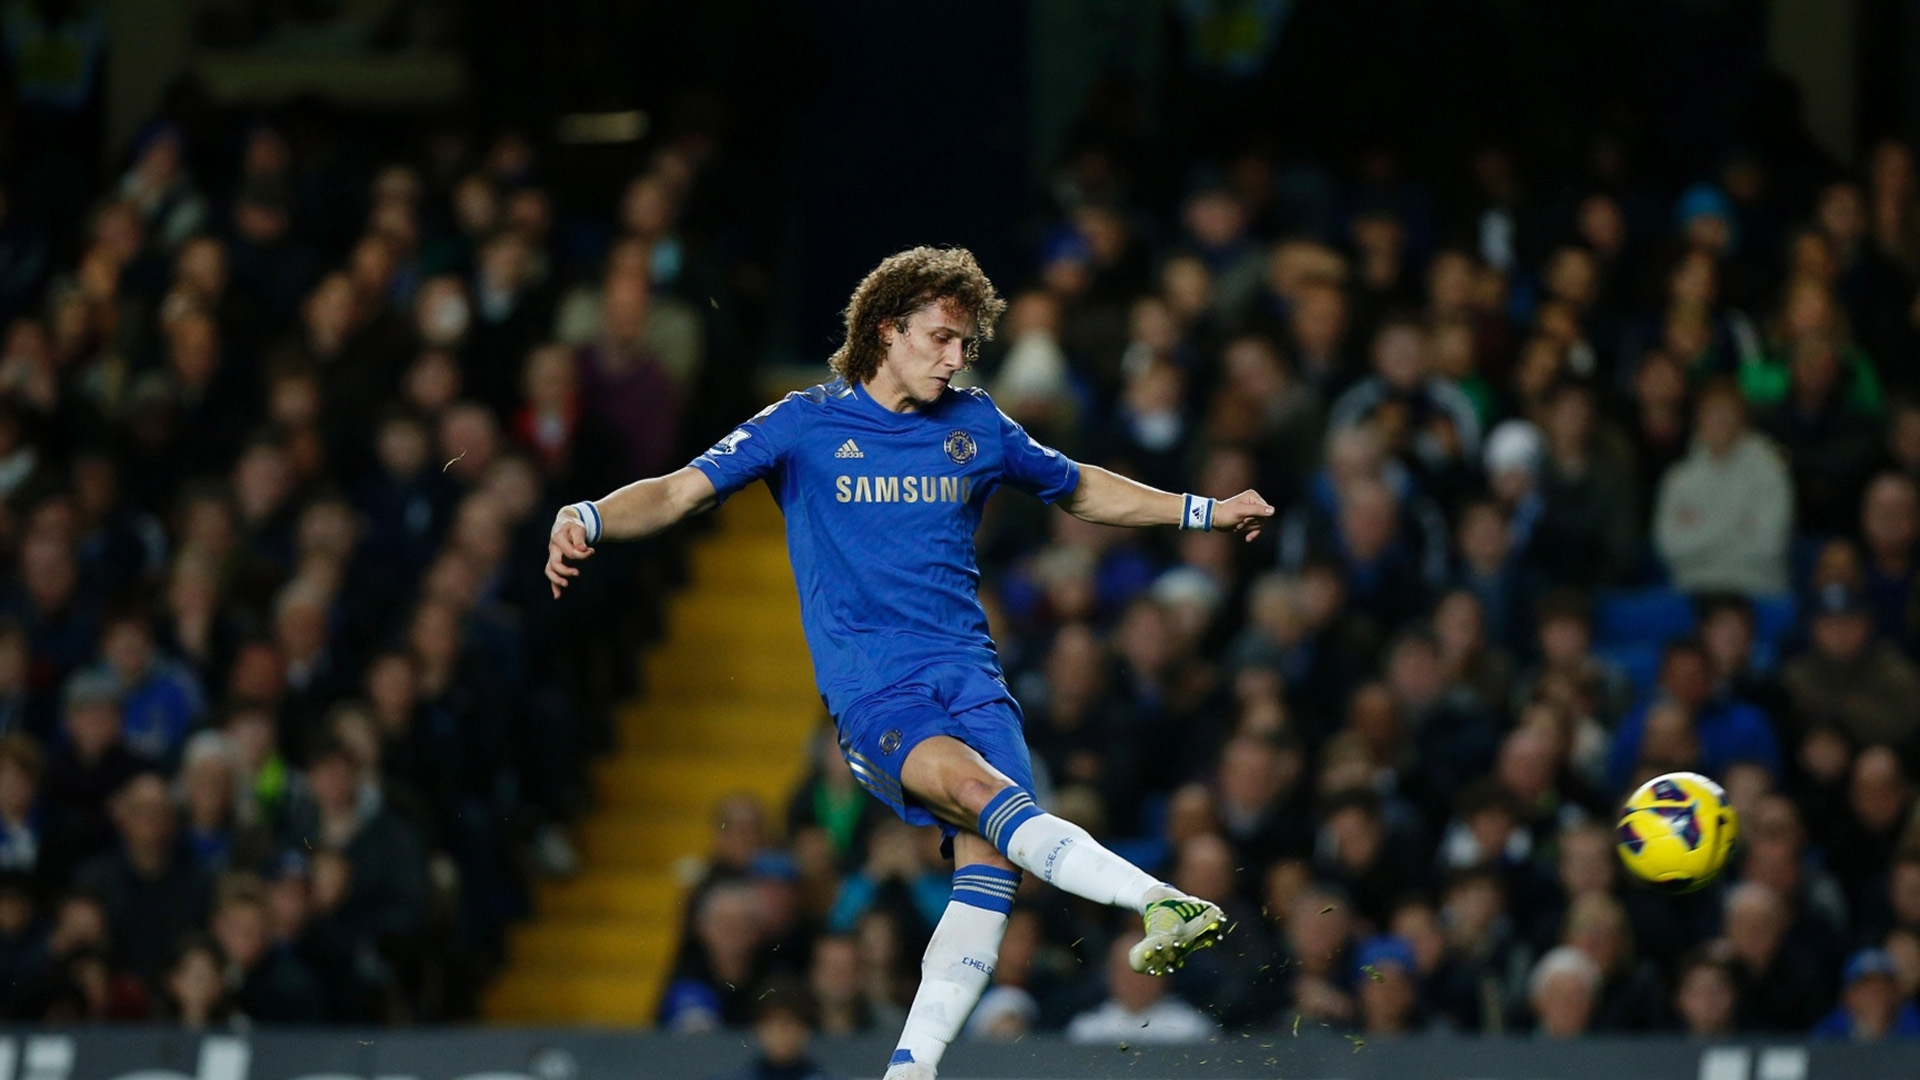 David Luiz Wallpaper 4   1920 X 1080 stmednet 1920x1080